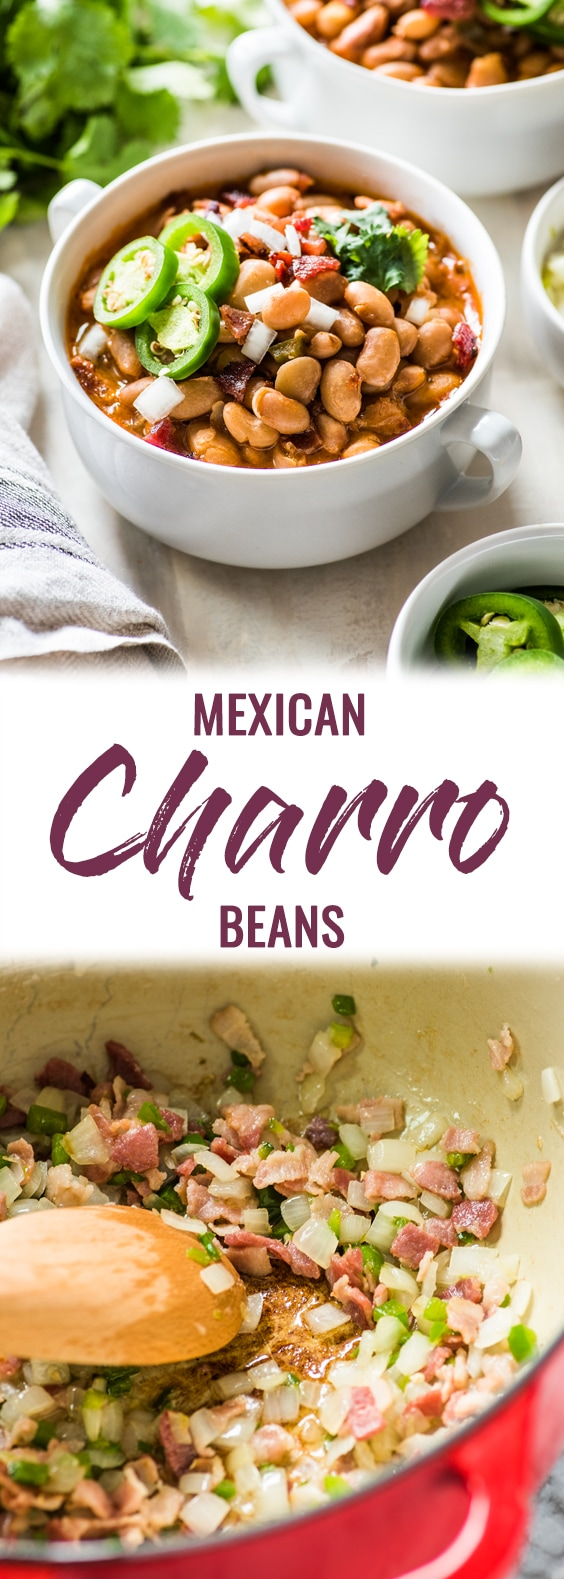 Charro Beans are Mexican-style pinto beans cooked in a broth made from bacon, onions, garlic, chipotle peppers, tomatoes and other delicious spices. Great as a side dish or as a full meal served with some cornbread! #mexican #glutenfree #beans | Made on the stovetop, these authentic charro beans are easy to make, and very filling and full of fiber.